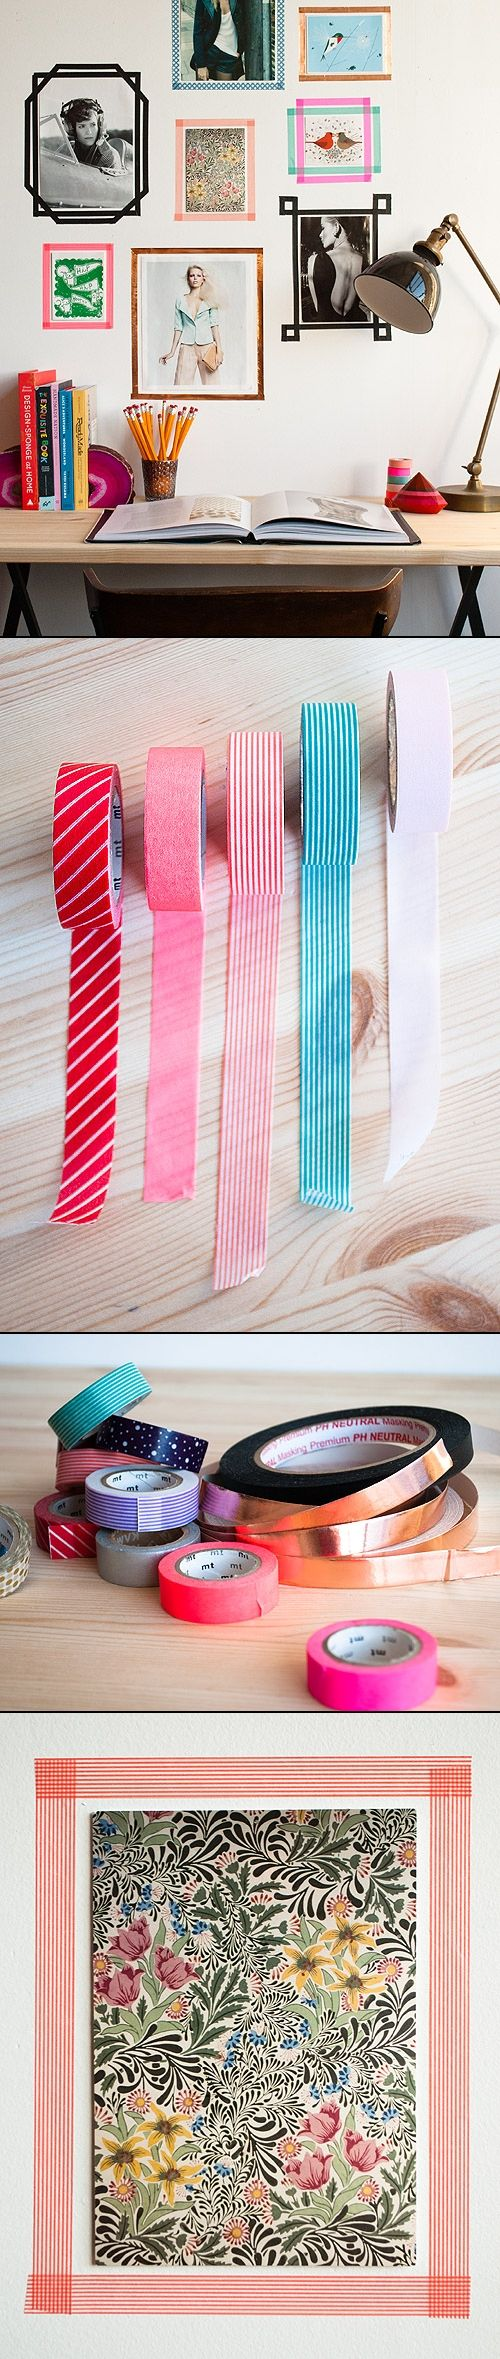 TAPE PICTURES FRAME #washi #tape #decoration